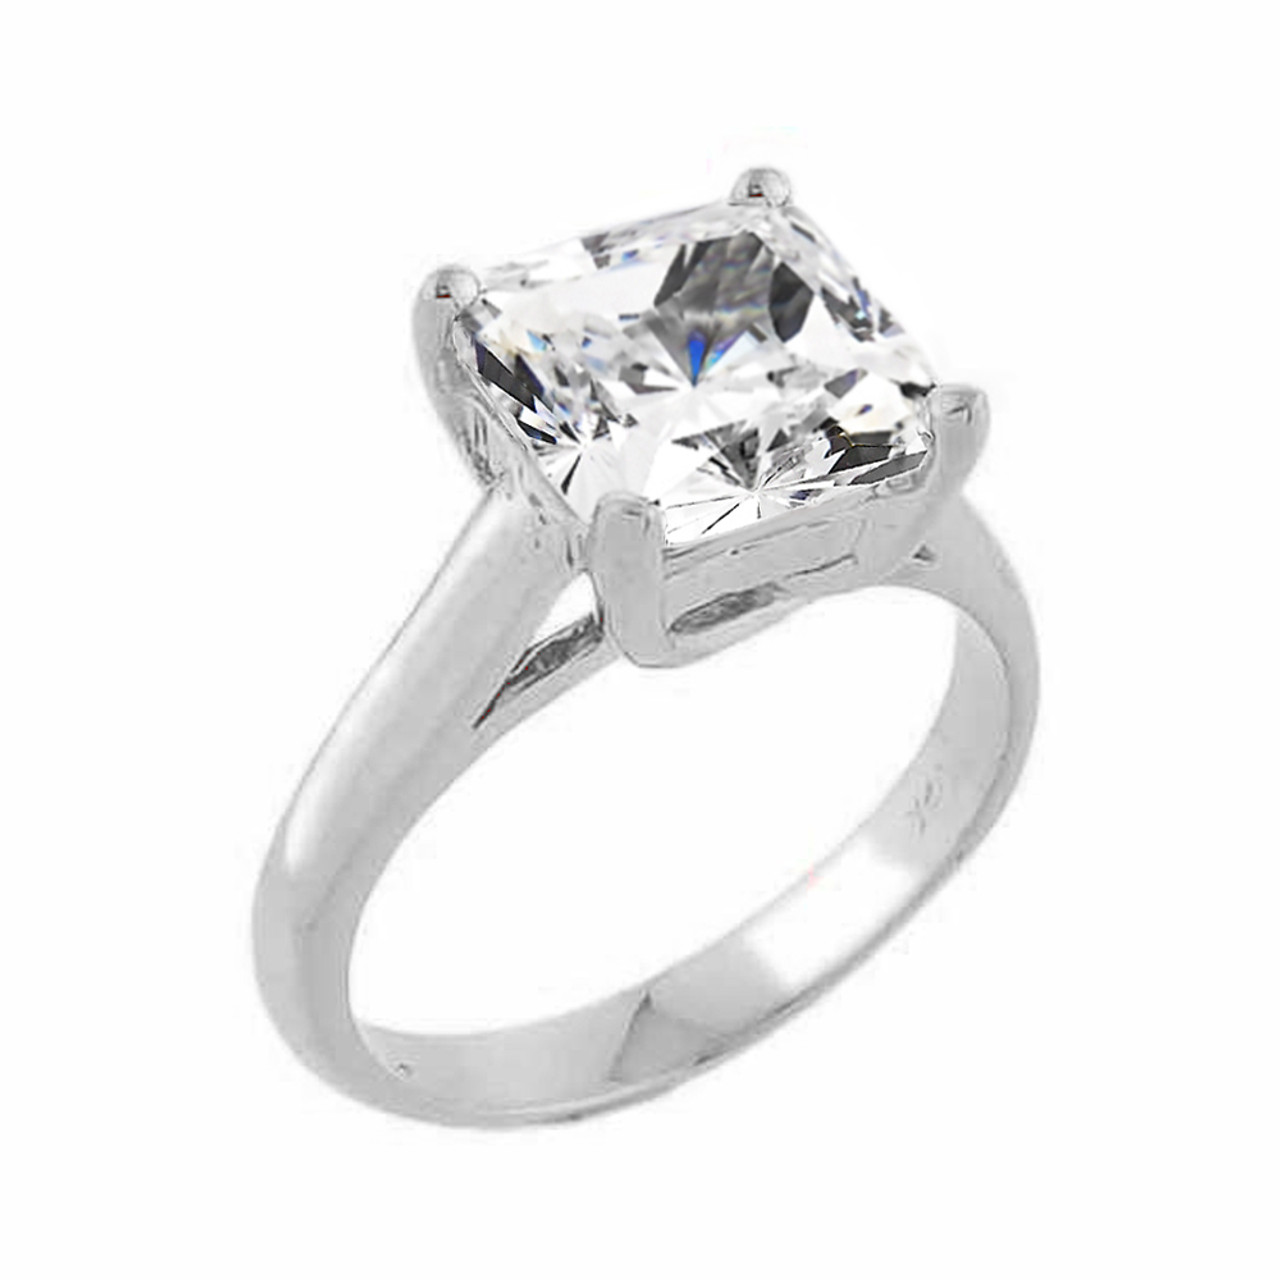 White Gold Princess Cut Cubic Zirconia Engagement Ring